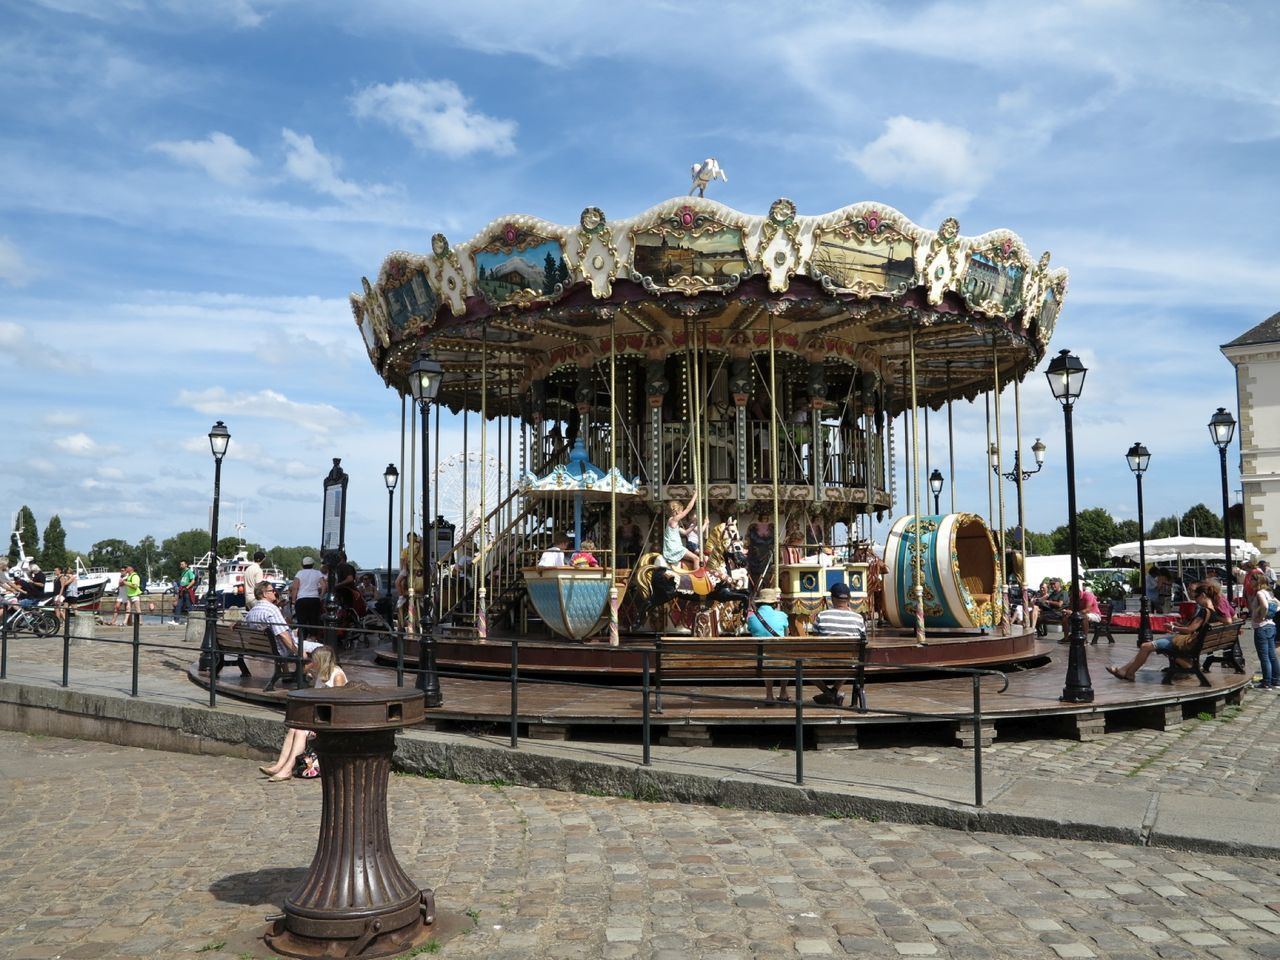 amusement park, arts culture and entertainment, carousel, sky, leisure activity, enjoyment, day, outdoors, amusement park ride, men, sitting, carousel horses, large group of people, merry-go-round, nature, people